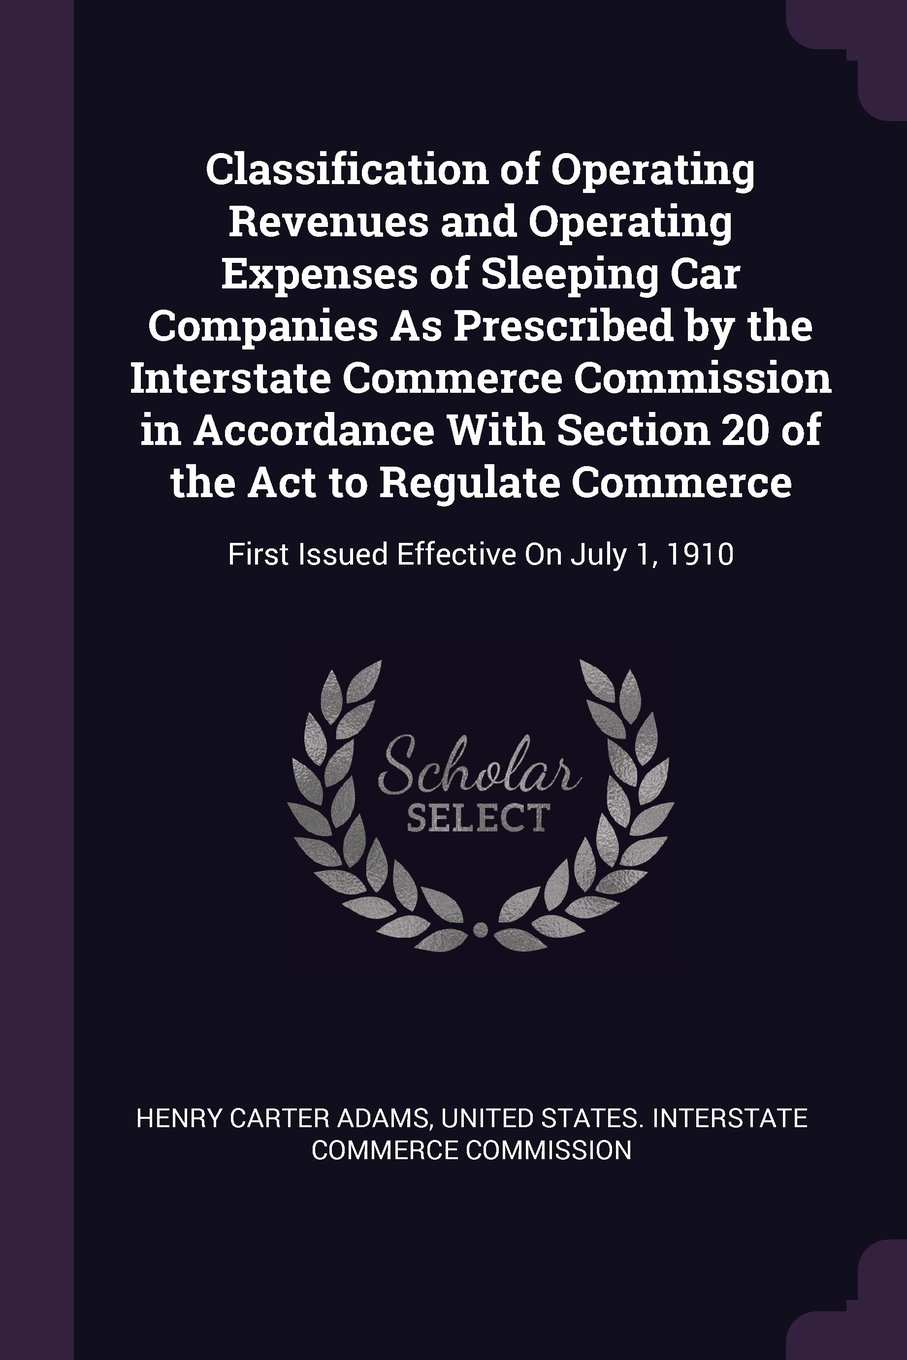 Download Classification of Operating Revenues and Operating Expenses of Sleeping Car Companies As Prescribed by the Interstate Commerce Commission in ... First Issued Effective On July 1, 1910 pdf